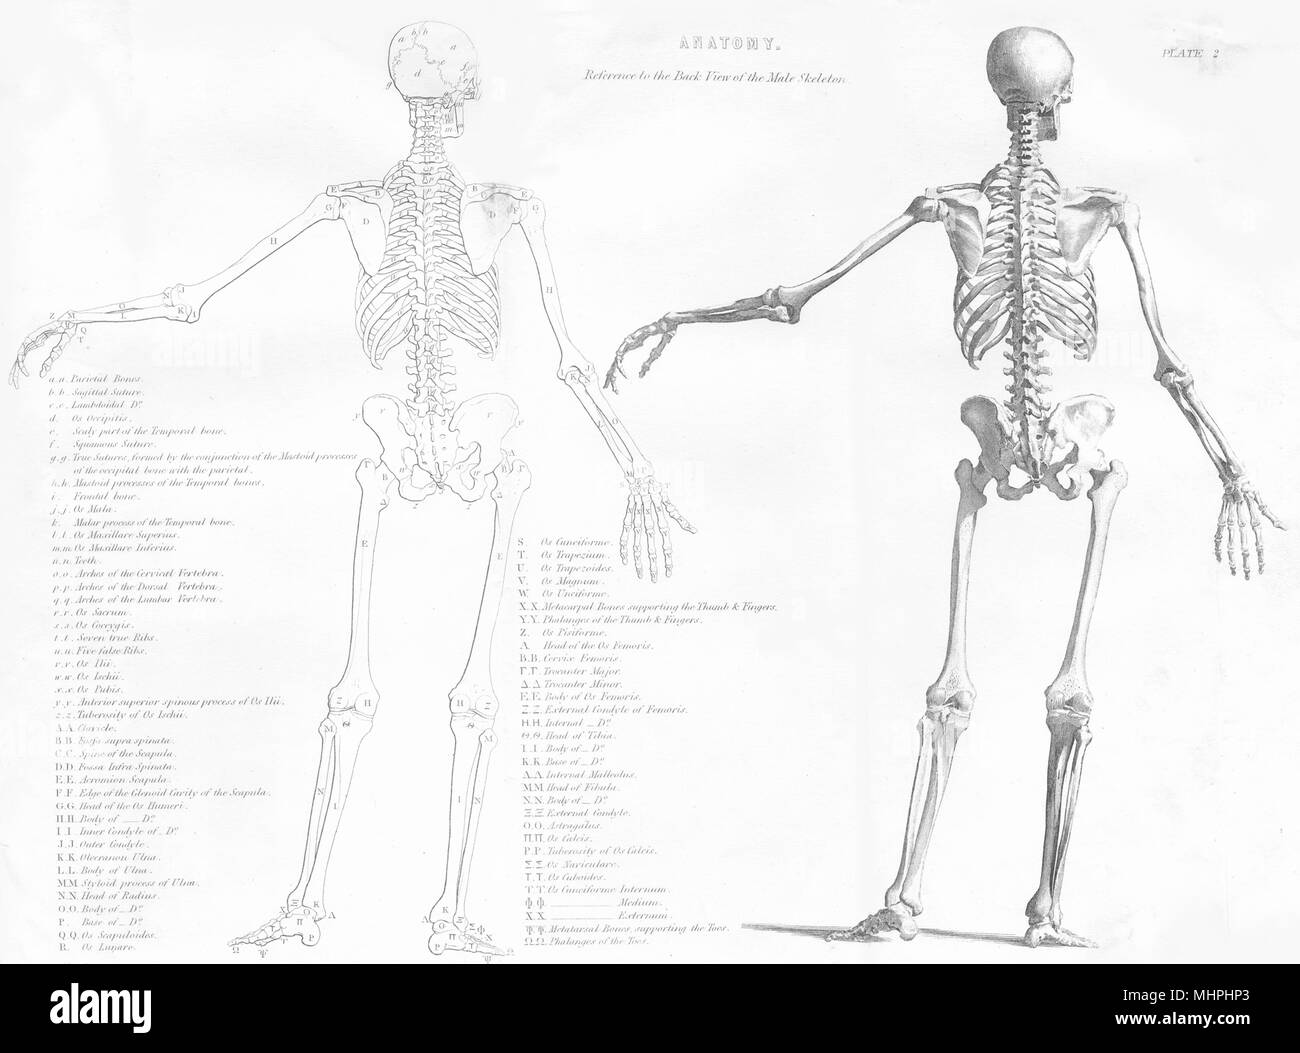 Biology Anatomy Reference To The Back View Of The Male Skeleton